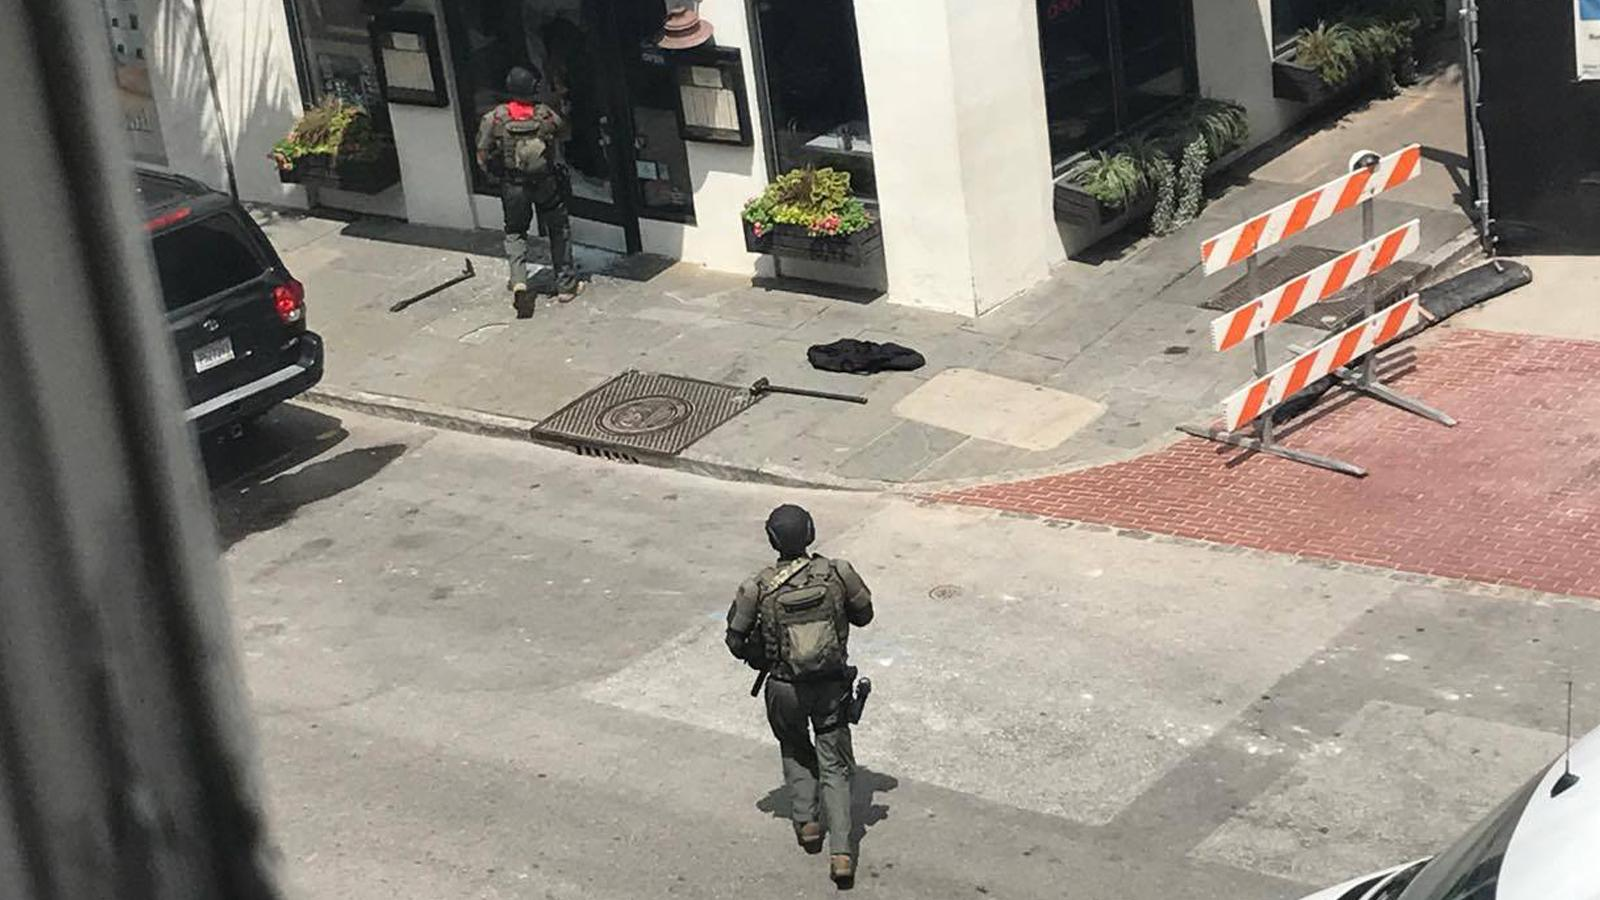 Law enforcement officers in body armor approach Virginia's on King restaurant. (Provided/Robbie Kimbrough)